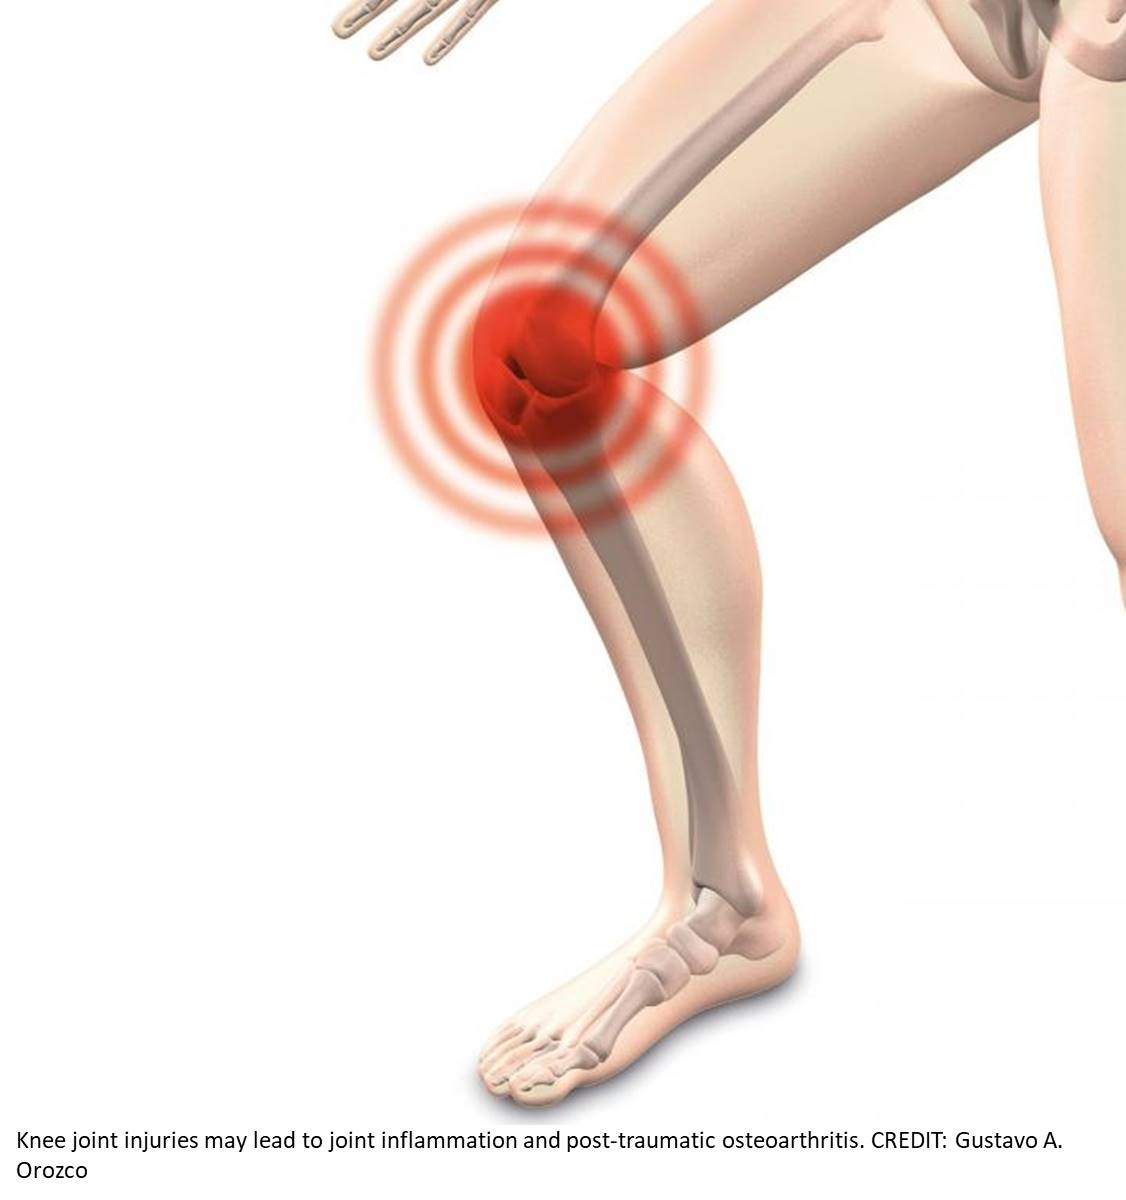 Why knee joint injury leads to osteoarthritis